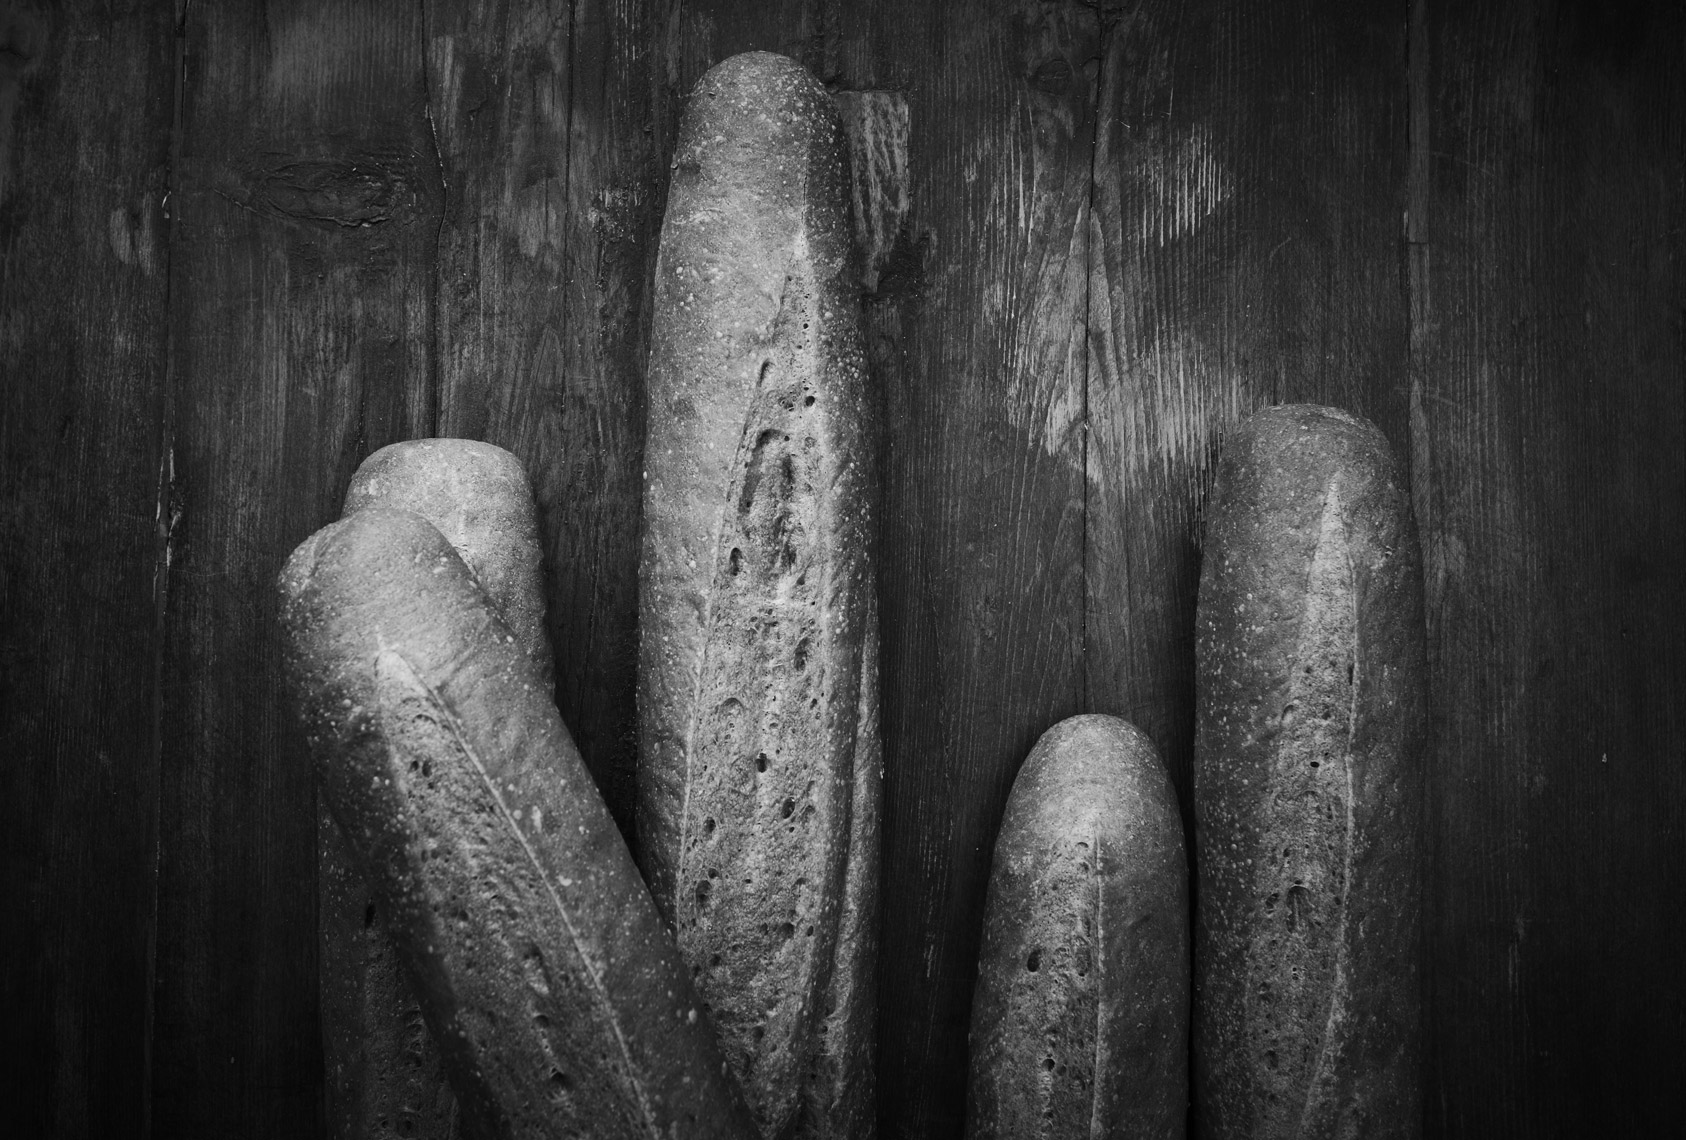 AlanCampbellPhotography, fancy baguettes made fresh in the morning